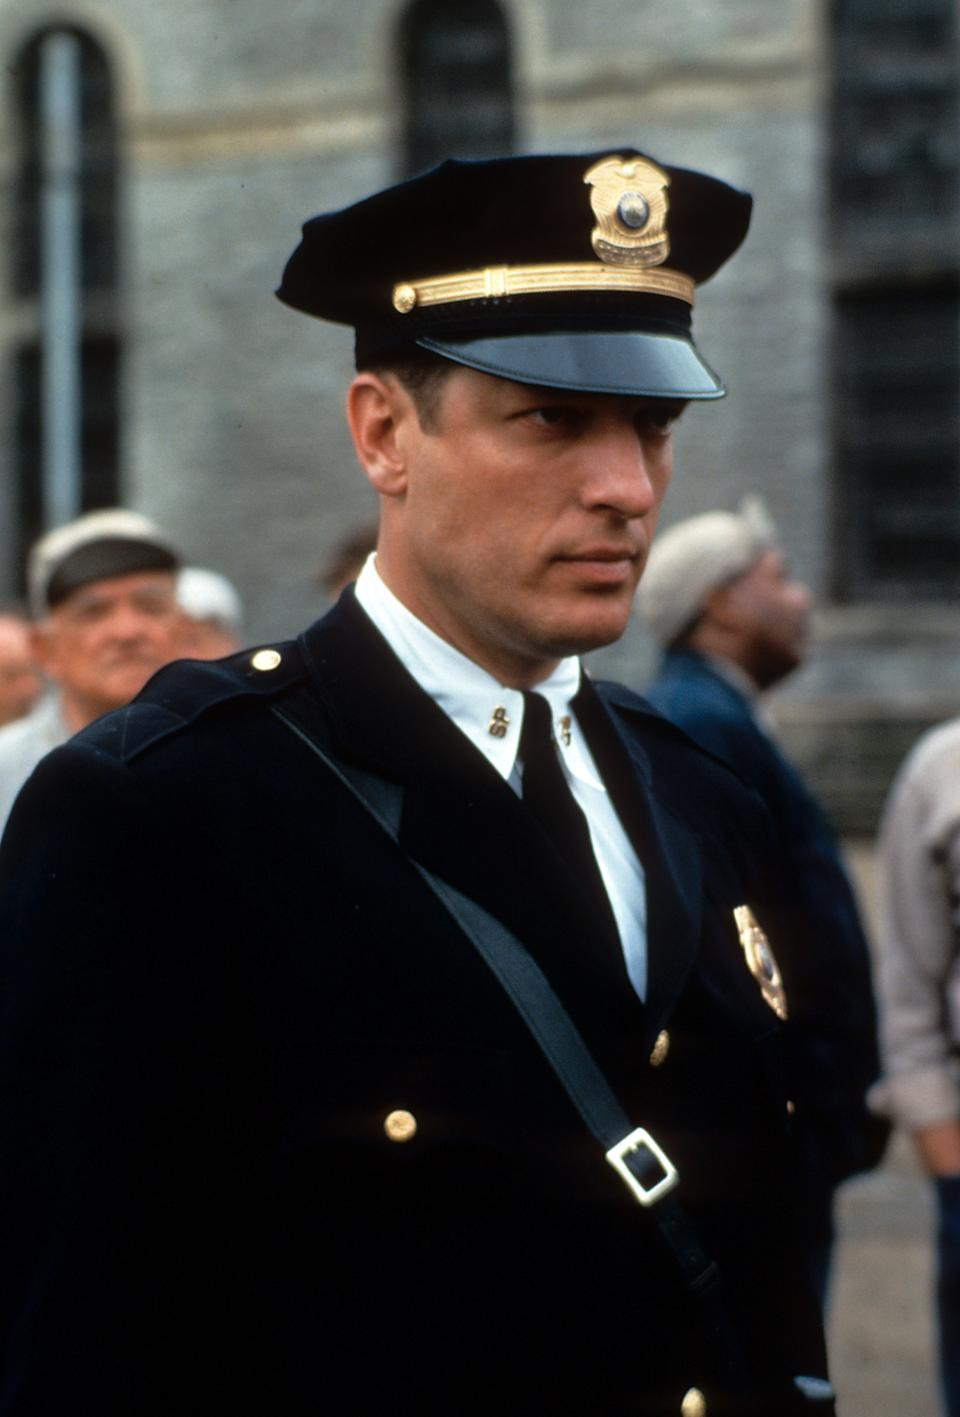 Clancy Brown in a uniform in a scene from the film 'The Shawshank Redemption', 1994. (Photo by Castle Rock Entertainment/Getty Images)